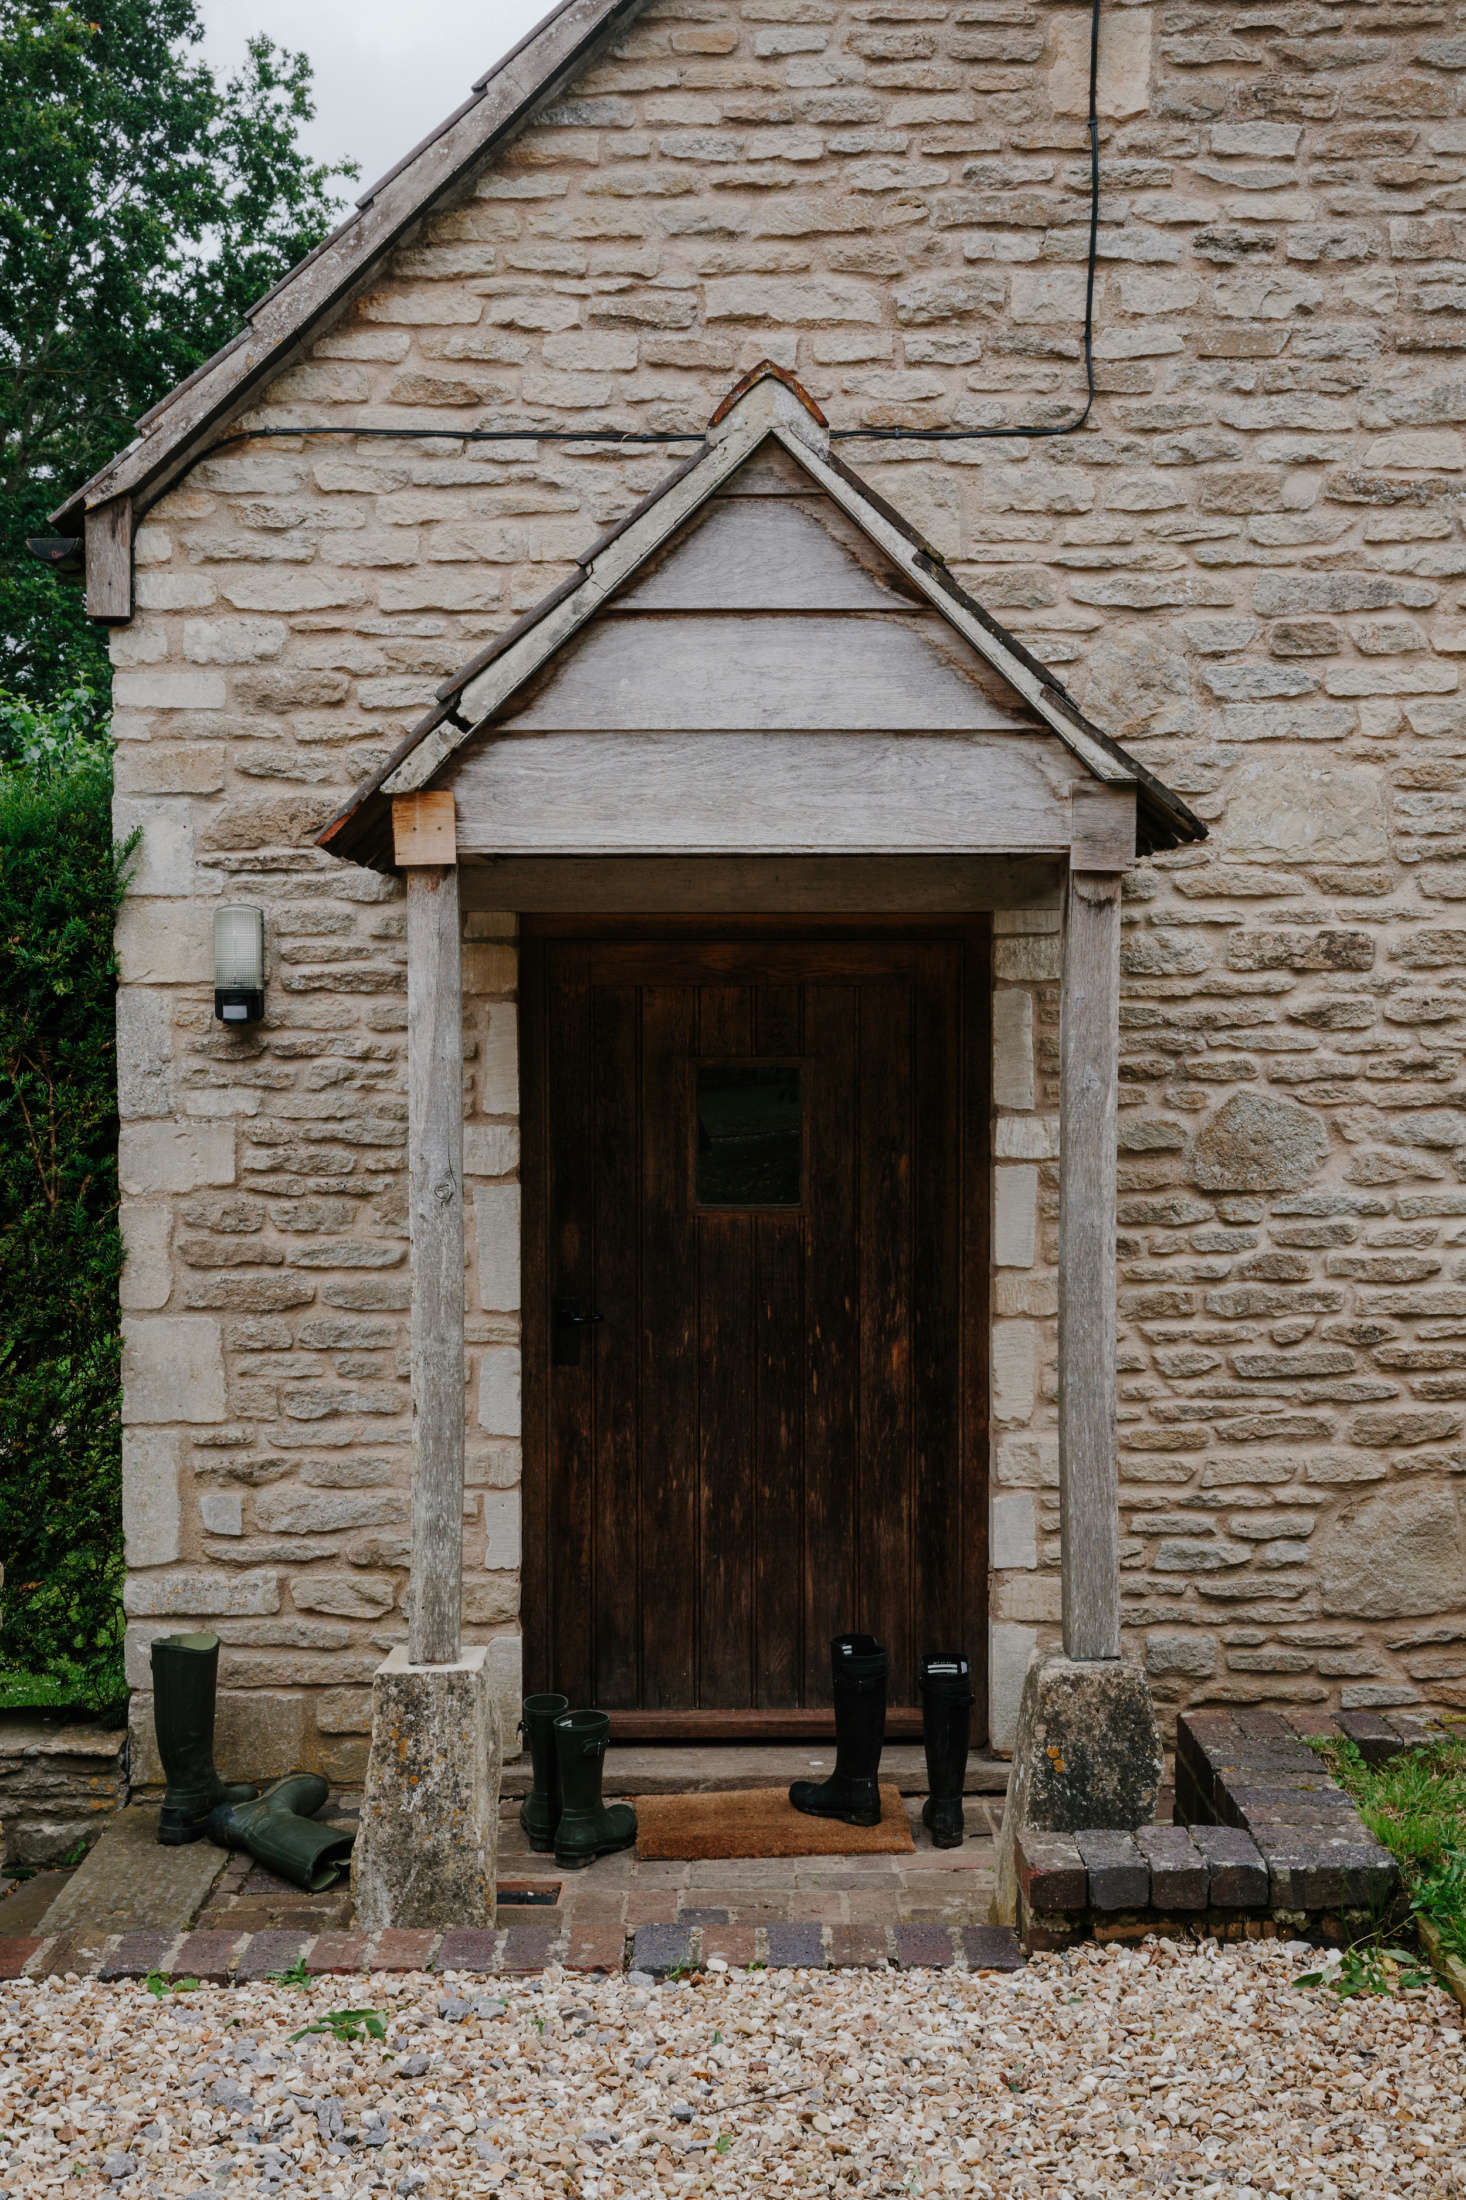 The entrance to the Baby Cottage, situated next to Whitehall, which sleeps two guests in a snug loft.